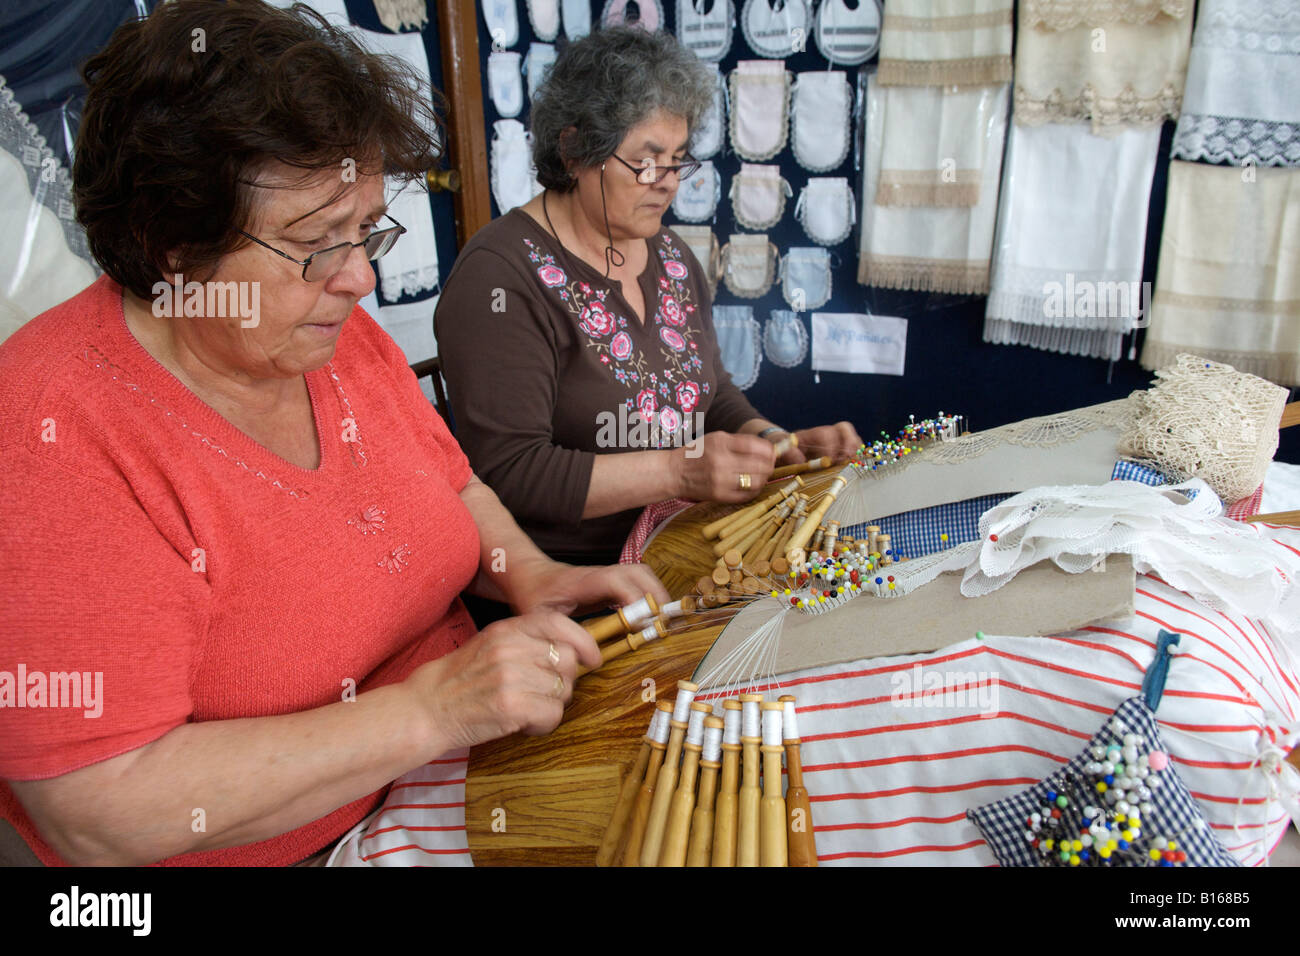 Spanish women weaving lace on their gingham pin cushions in the village of Camariñas in the Galicia region - Stock Image